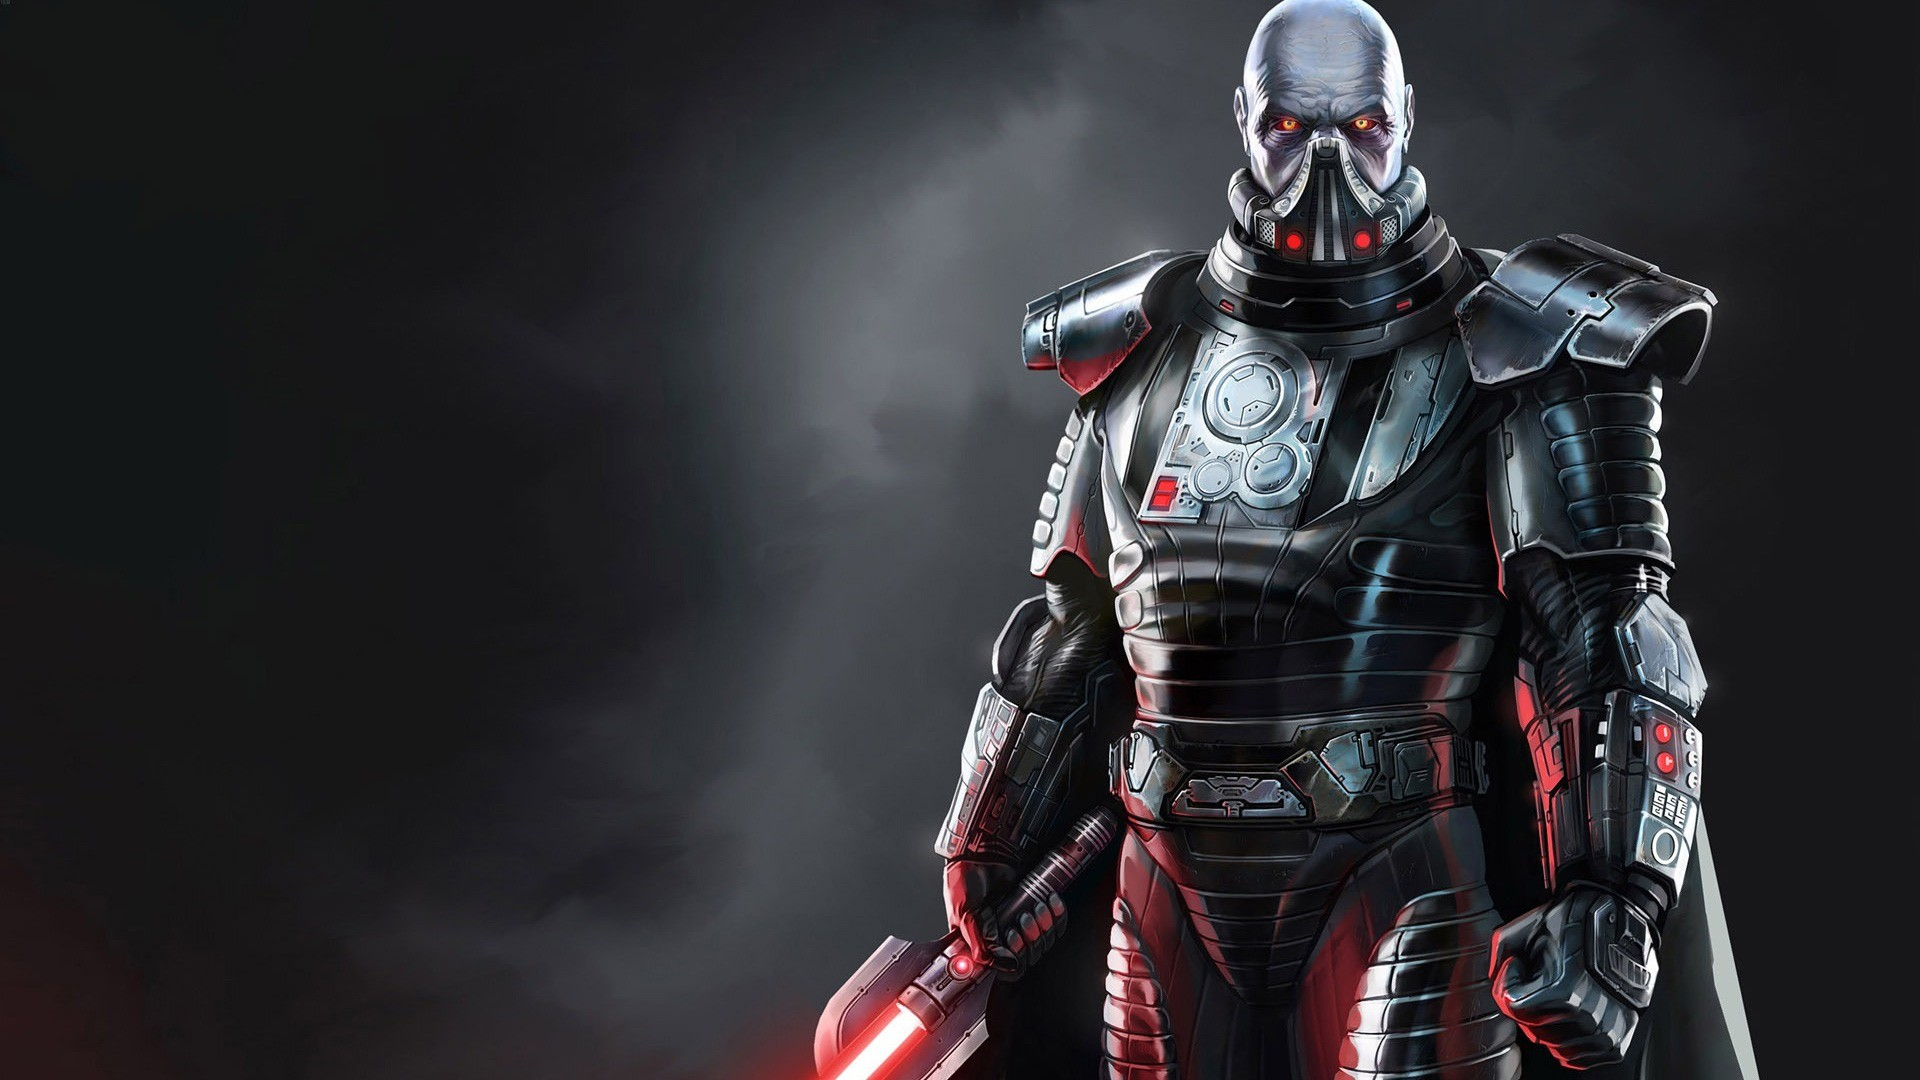 Res: 1920x1080, Star Wars Sith Wallpaper Images